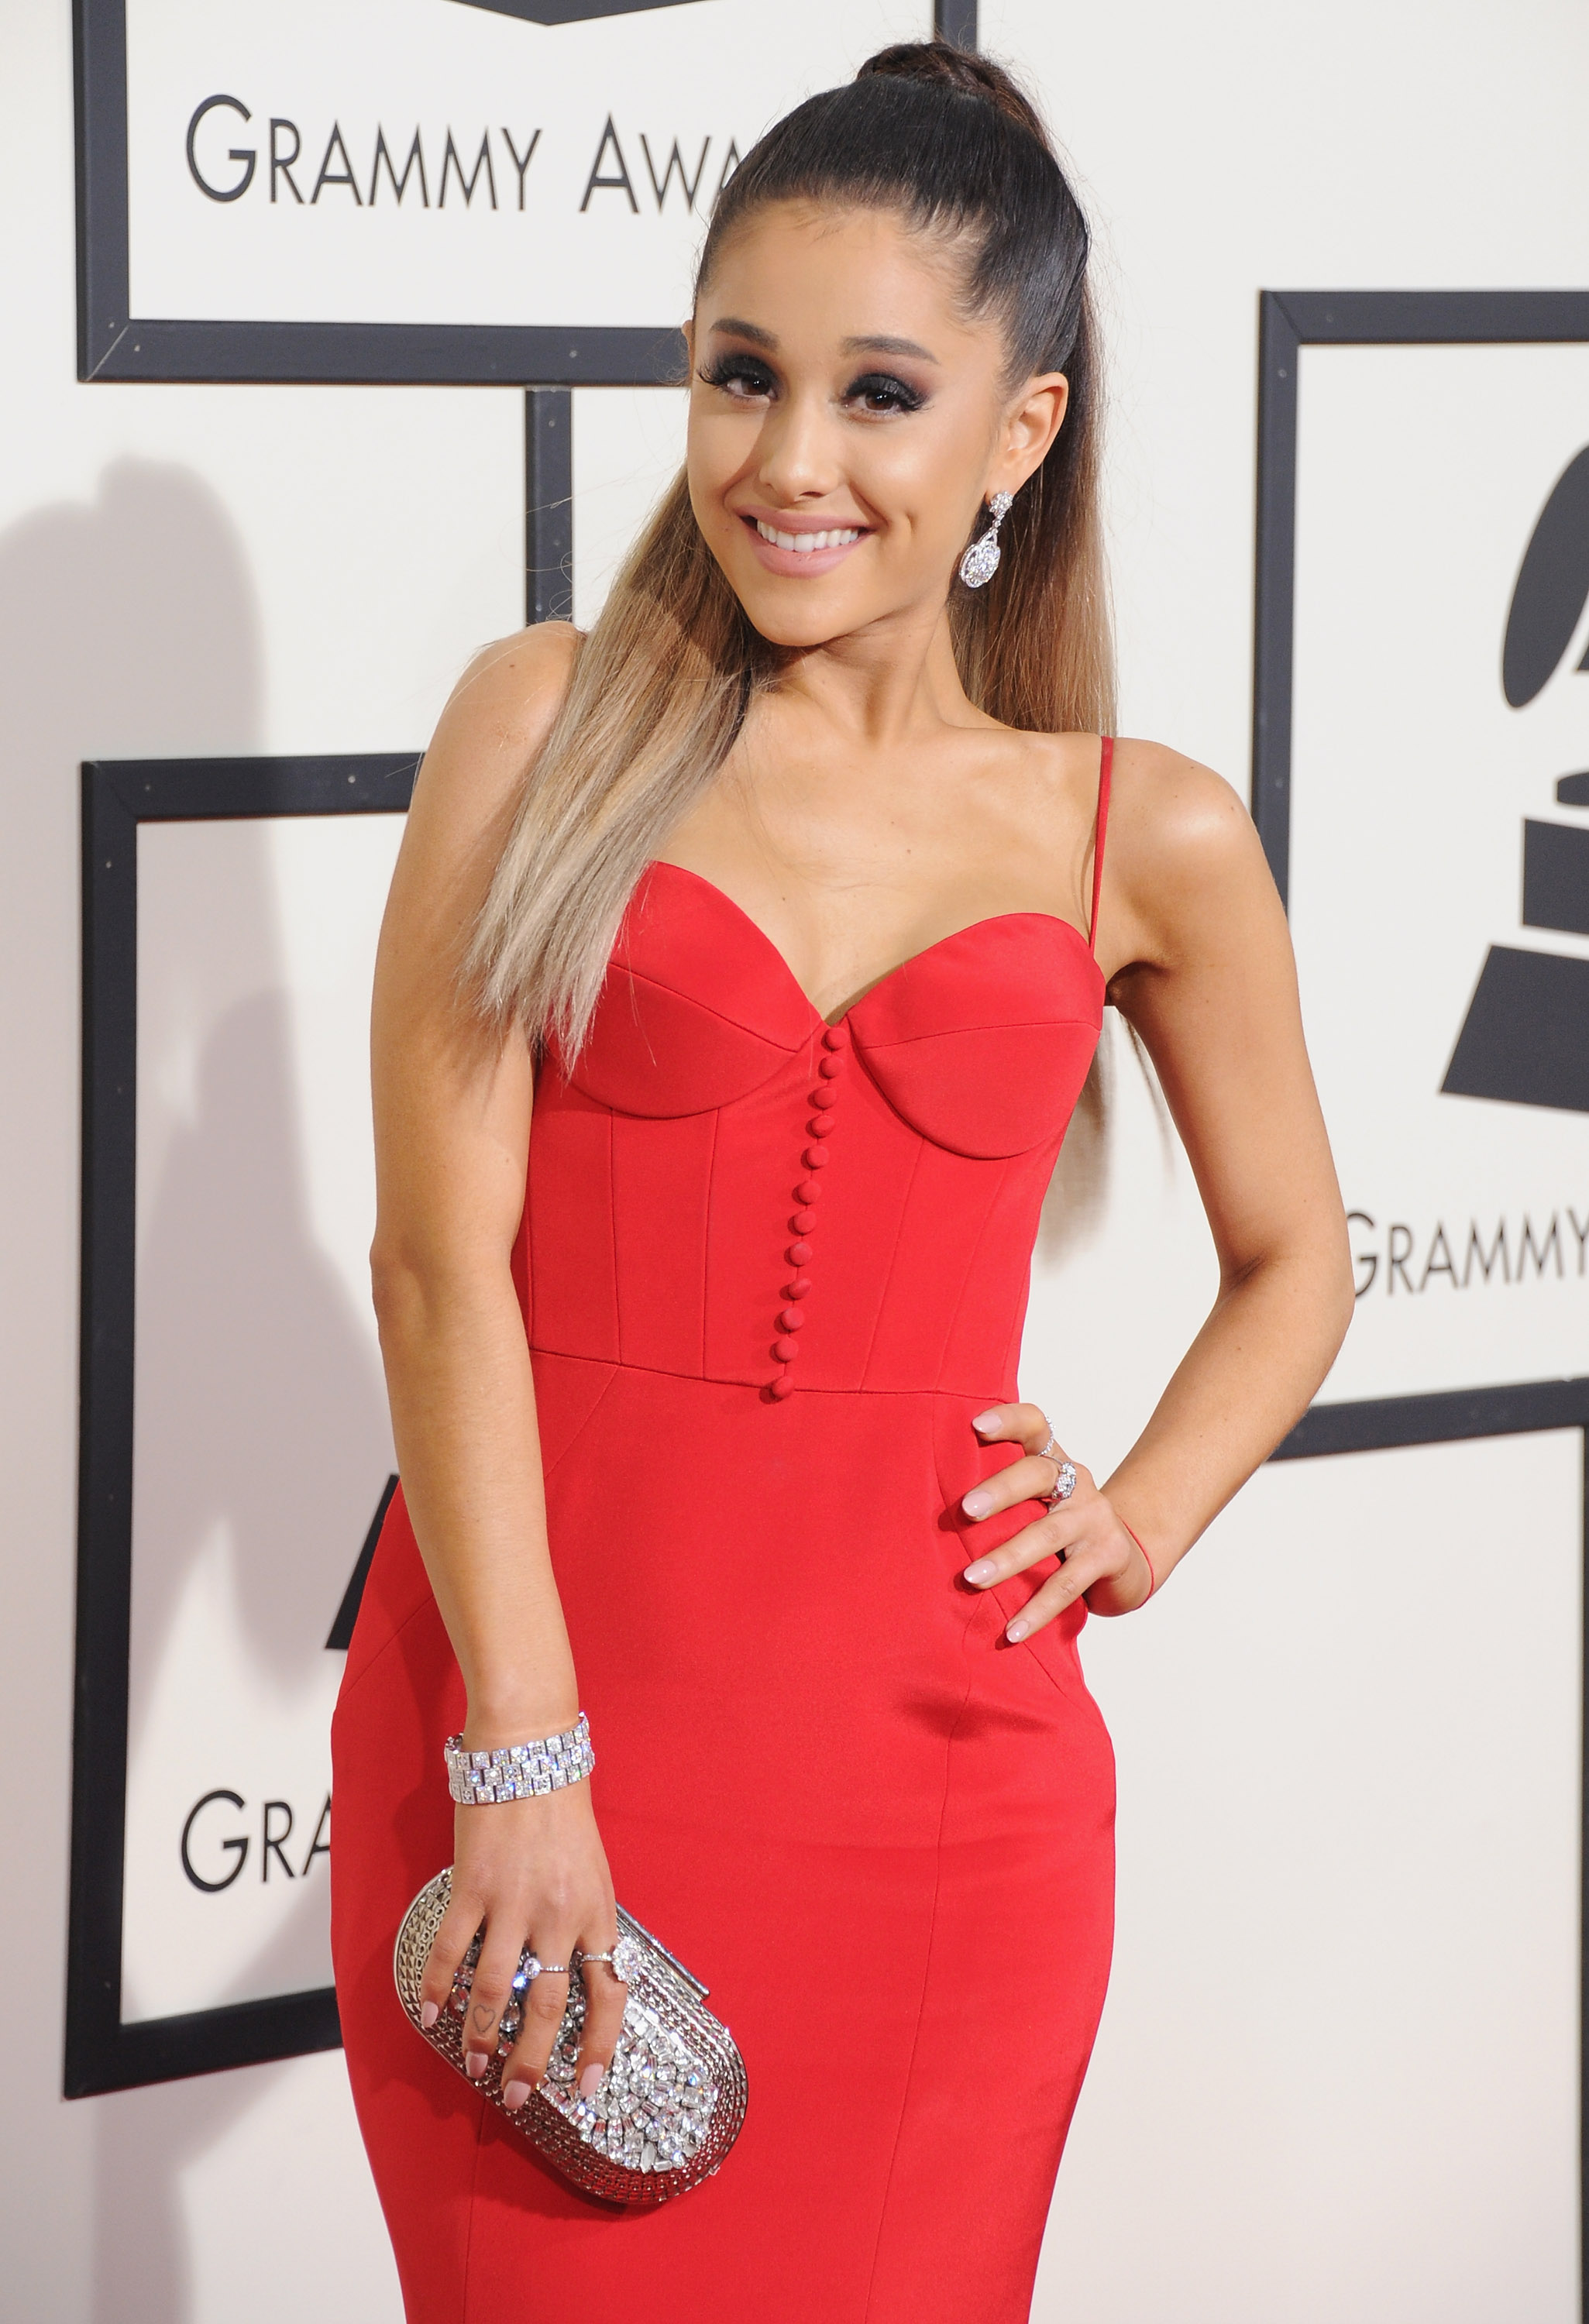 Ariana Grande Hot Topless Wallpapers, Images & Photos